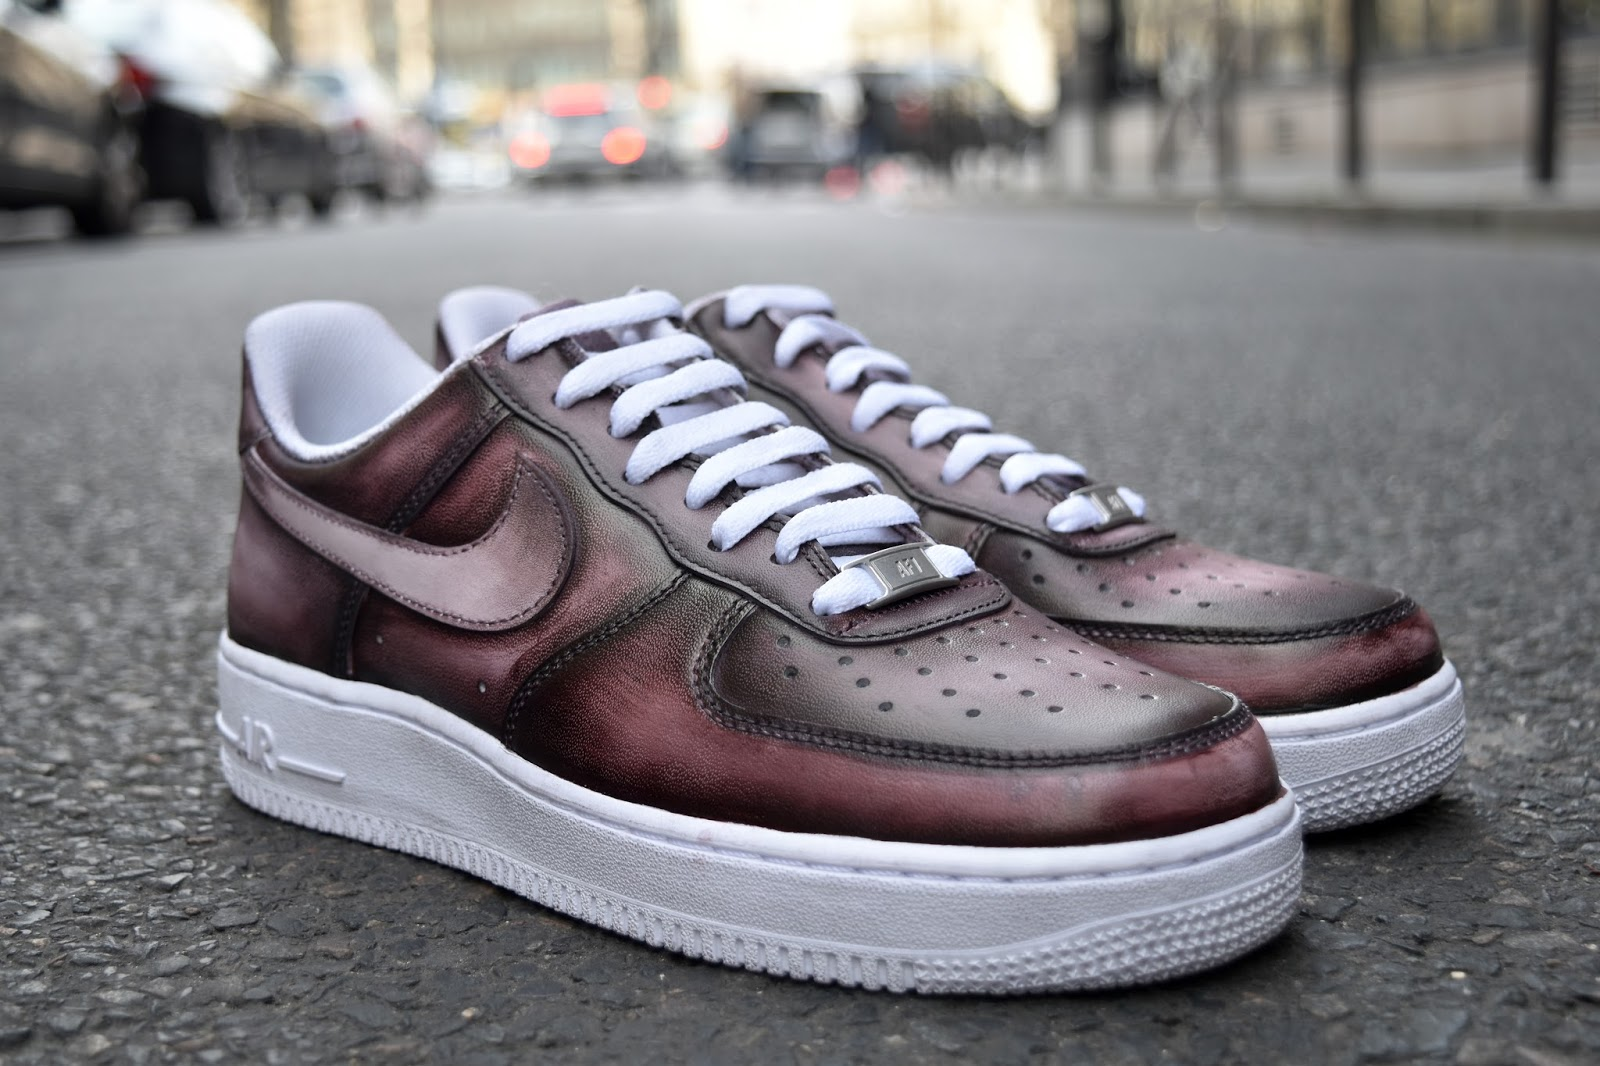 newest c4ad7 3a3a3 Nike Air Force One Low Patine dégradée et nuances de marron havane